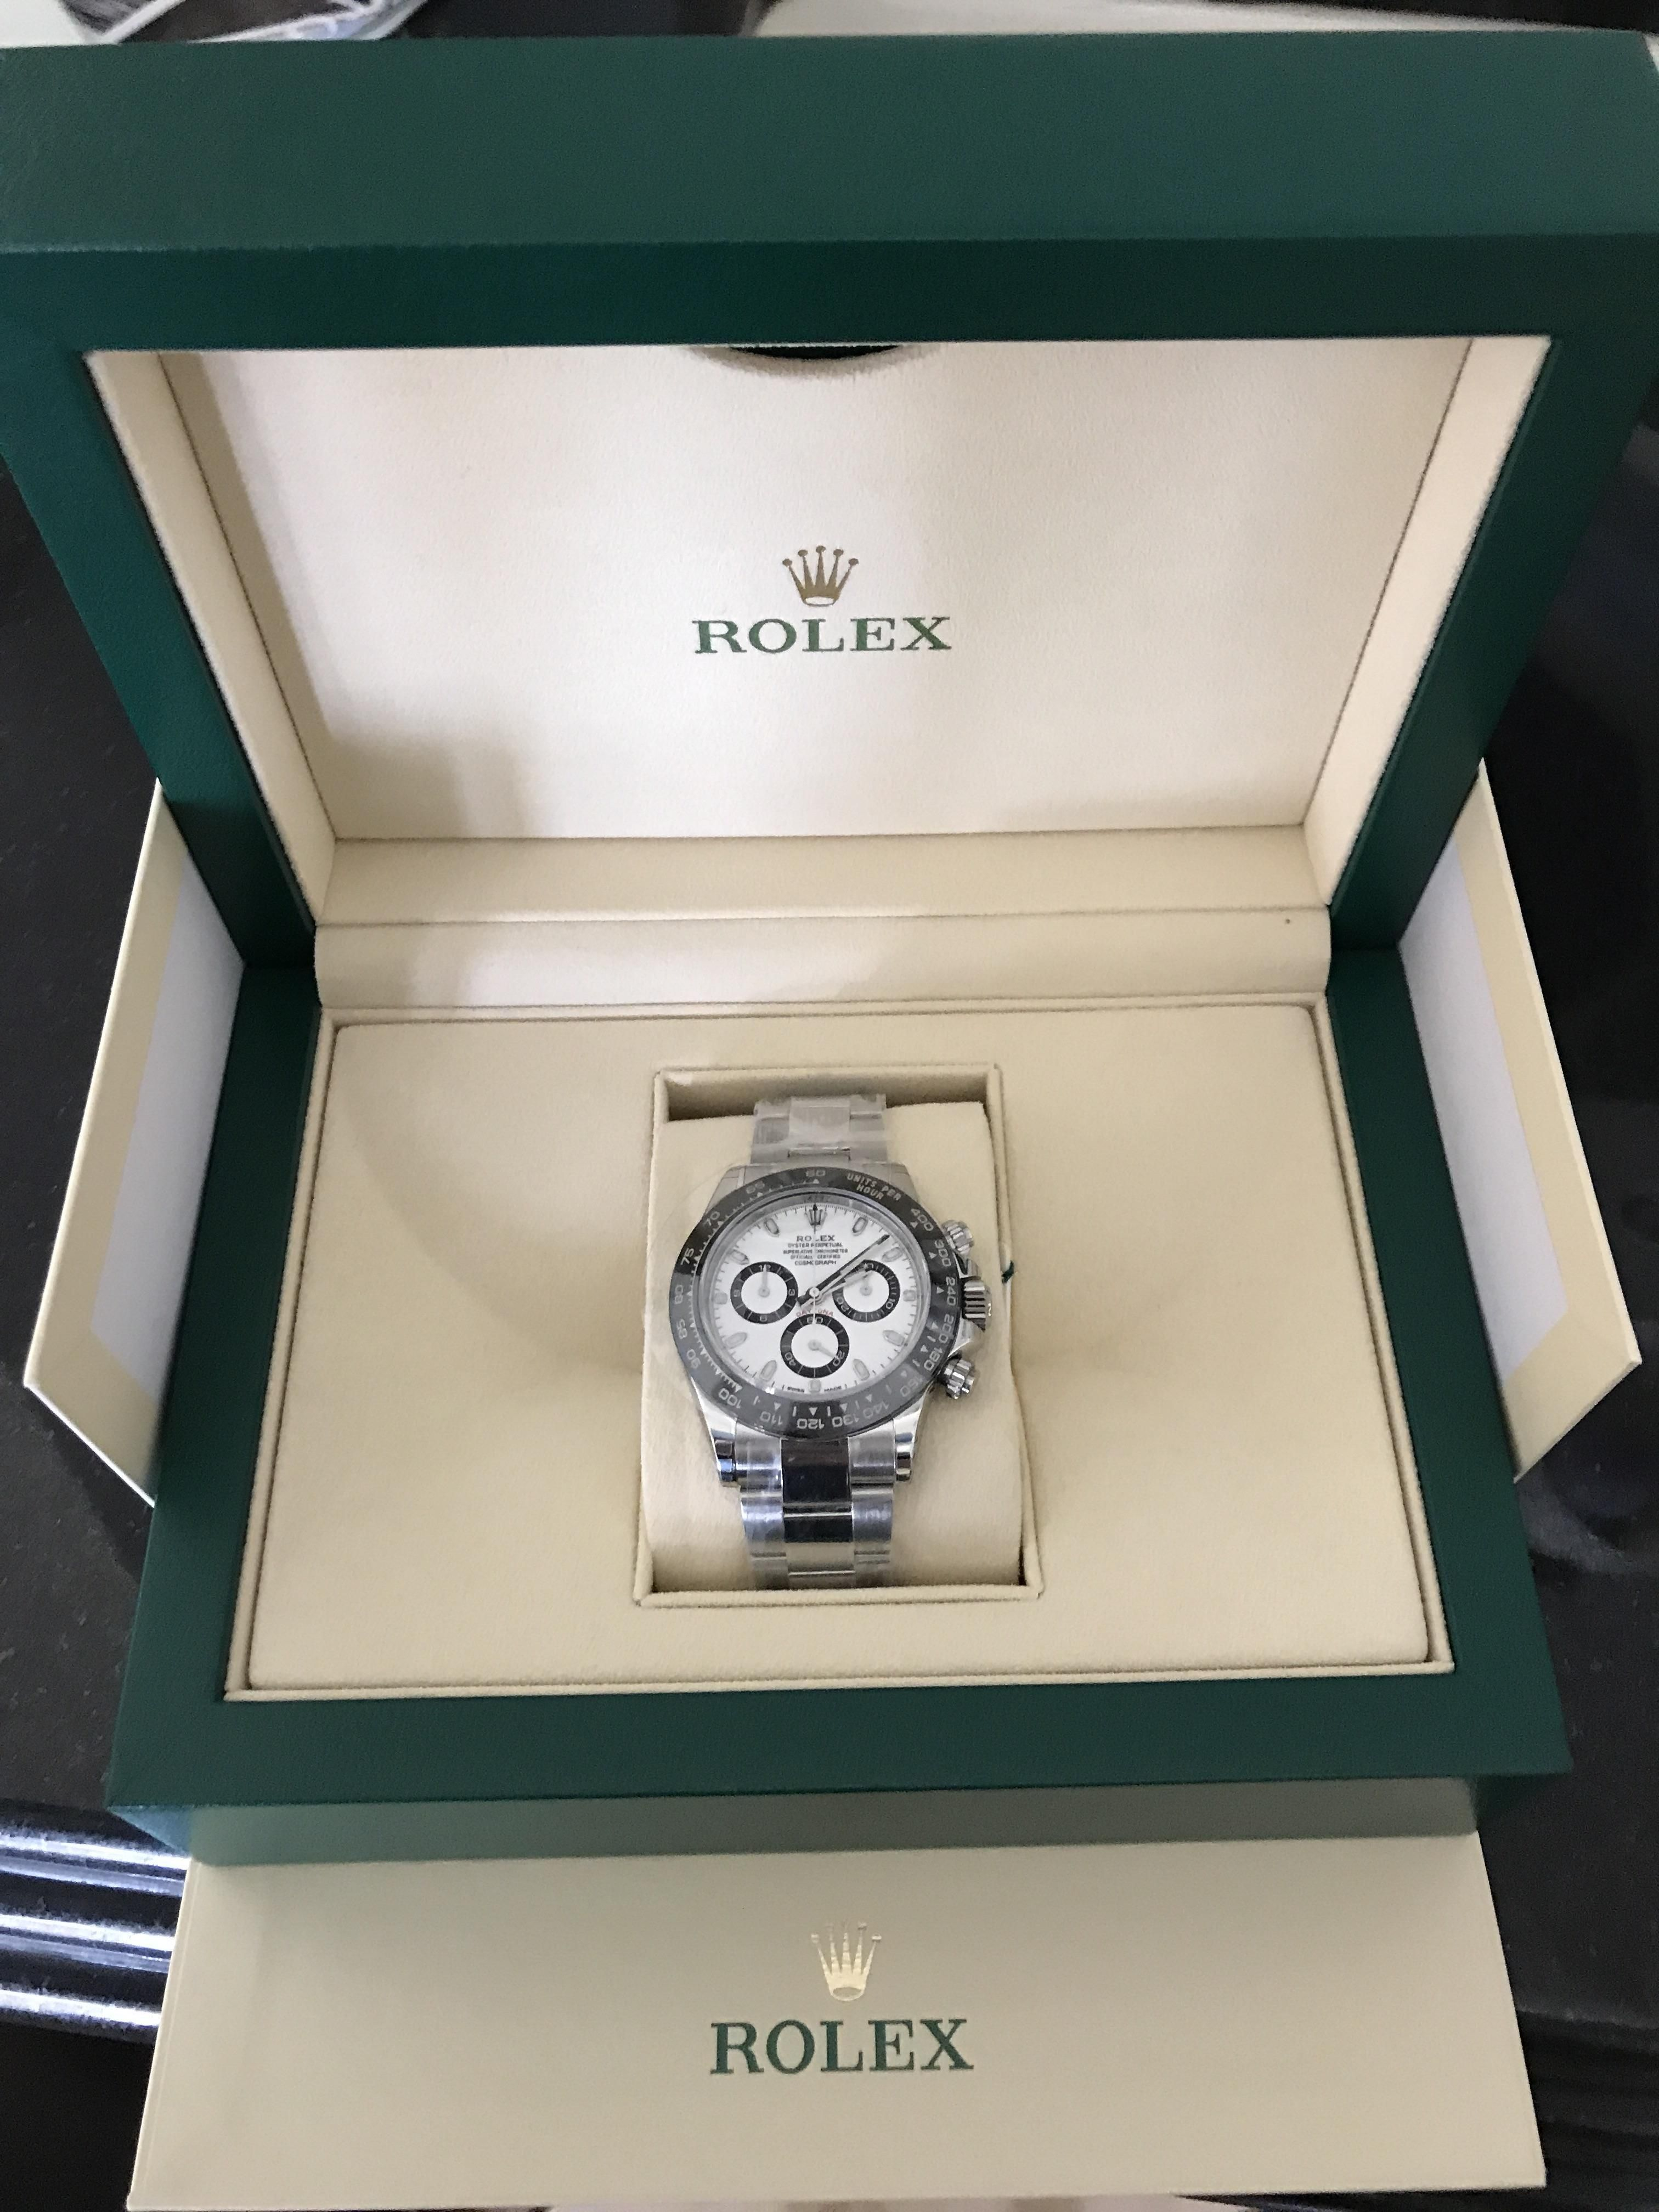 [Rolex] My Fathers Day Gift For My Dad Arrived Today